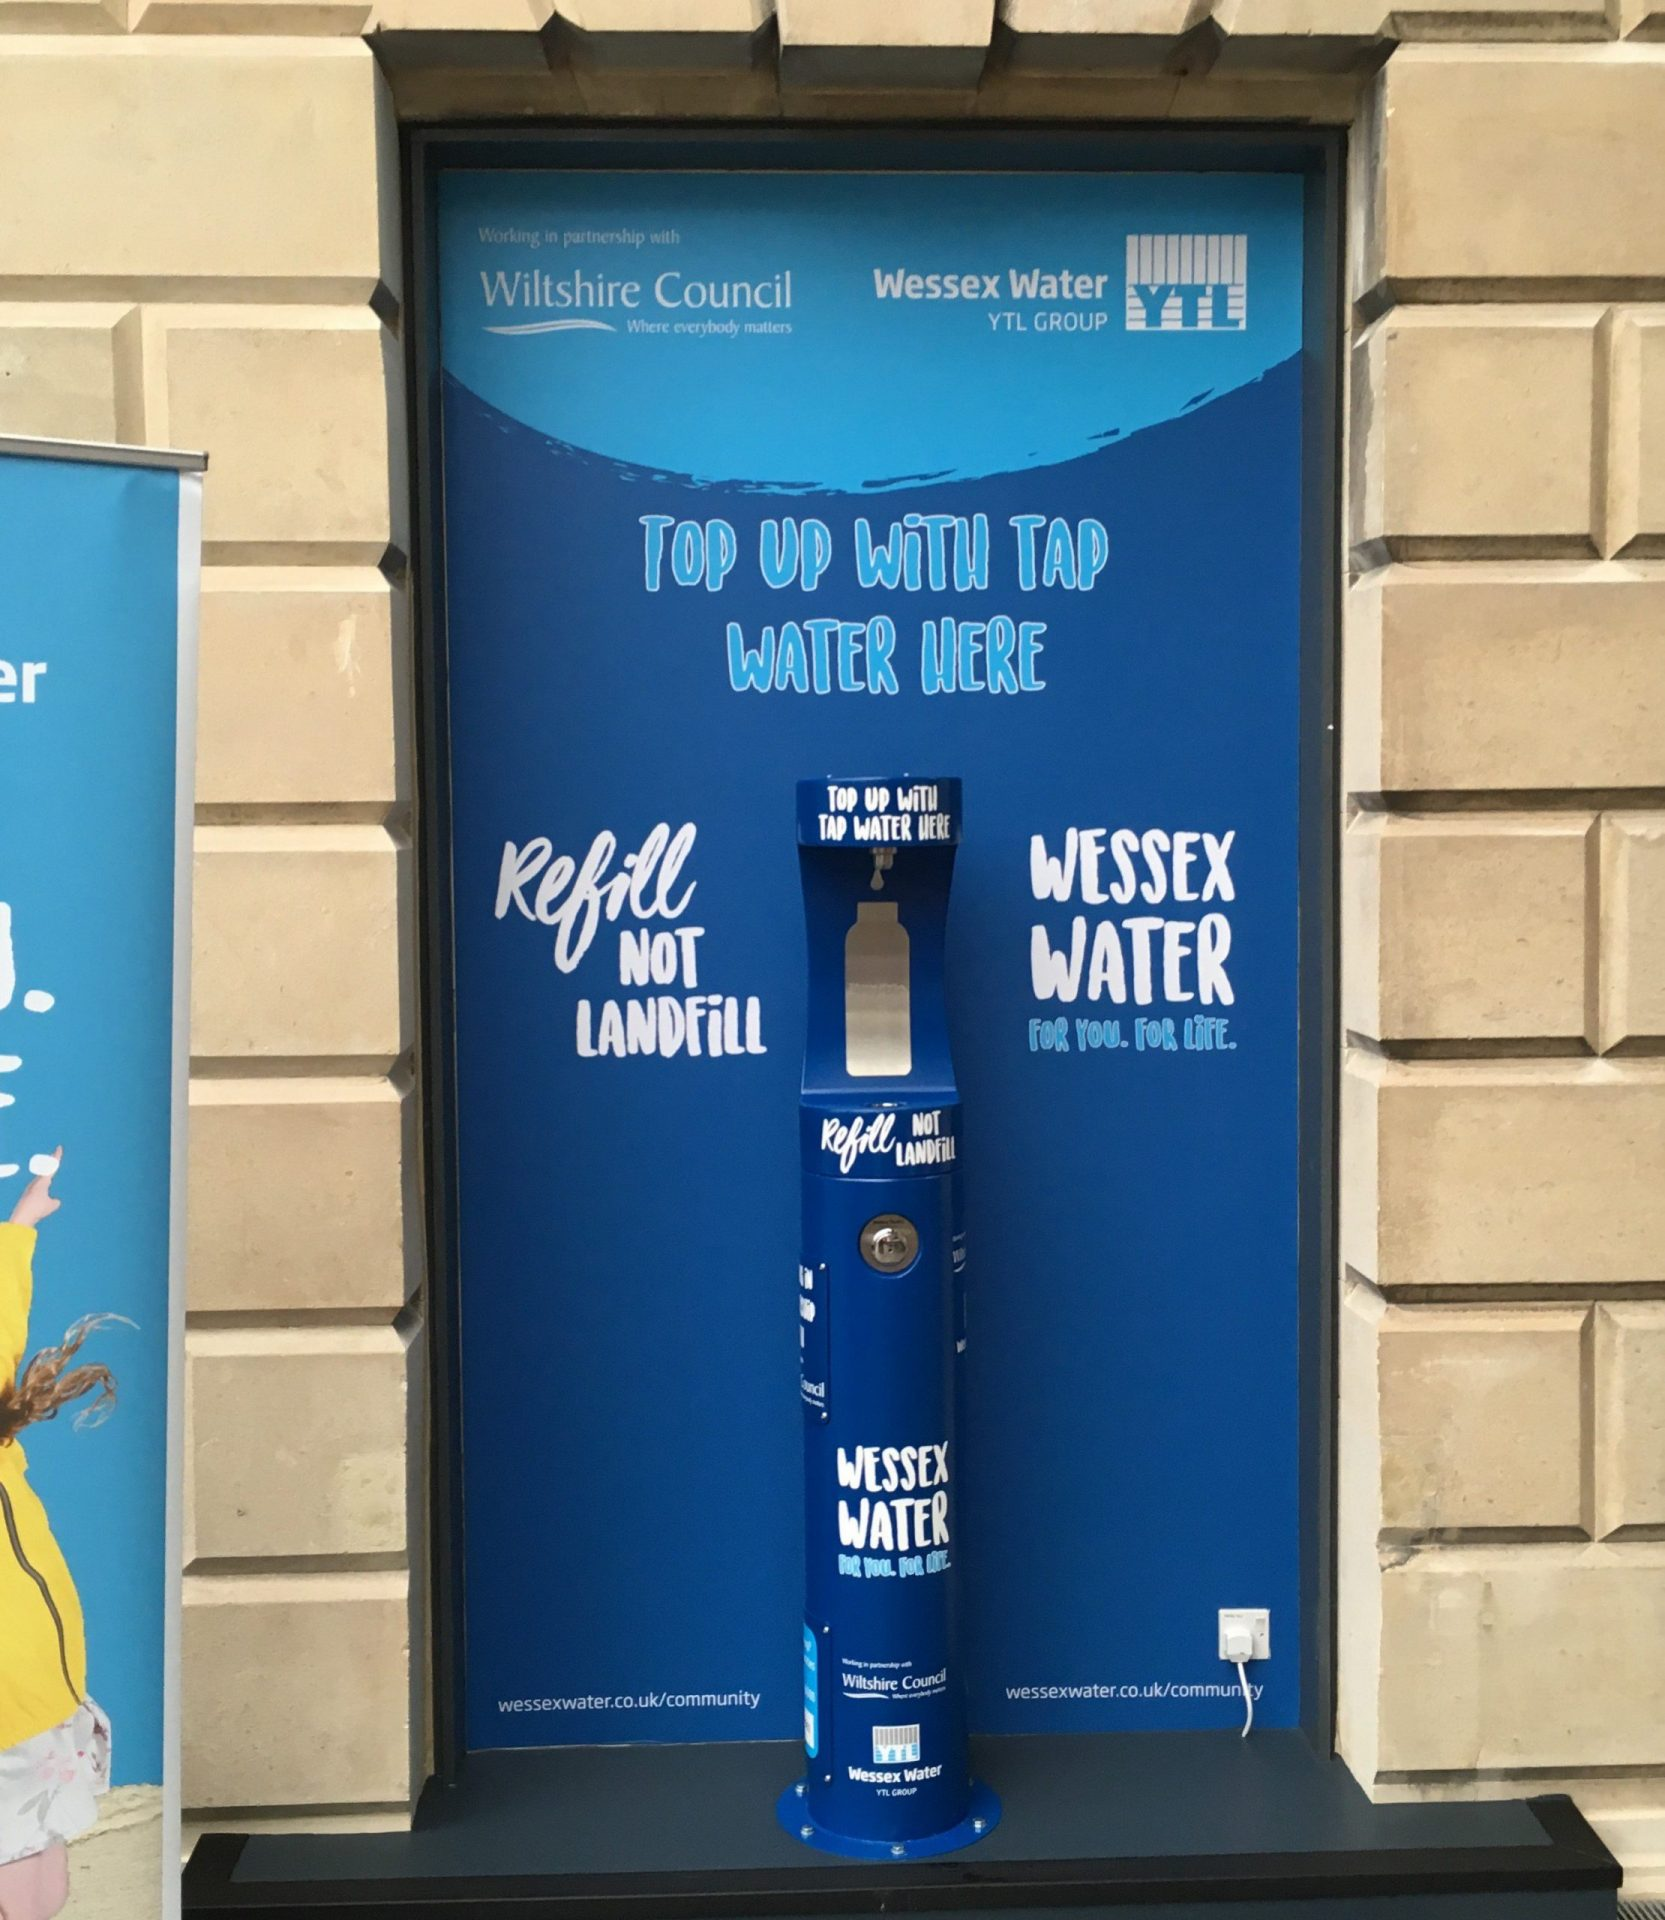 Newly installed Wessex Water and Wiltshire Council bottle refill station in County Hall